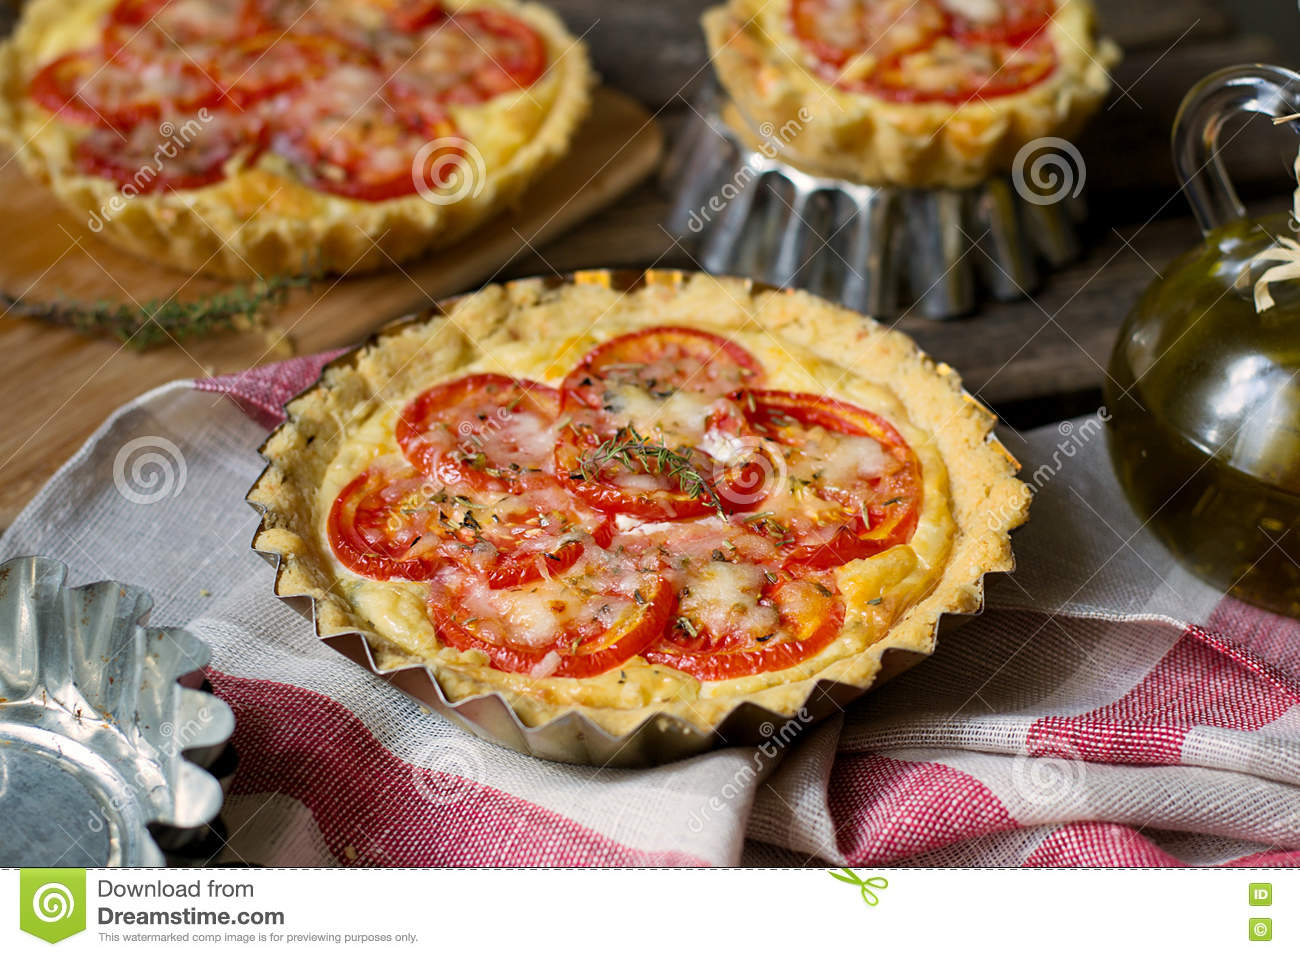 French savoury pie quiche with cottage cheese and tomatoes